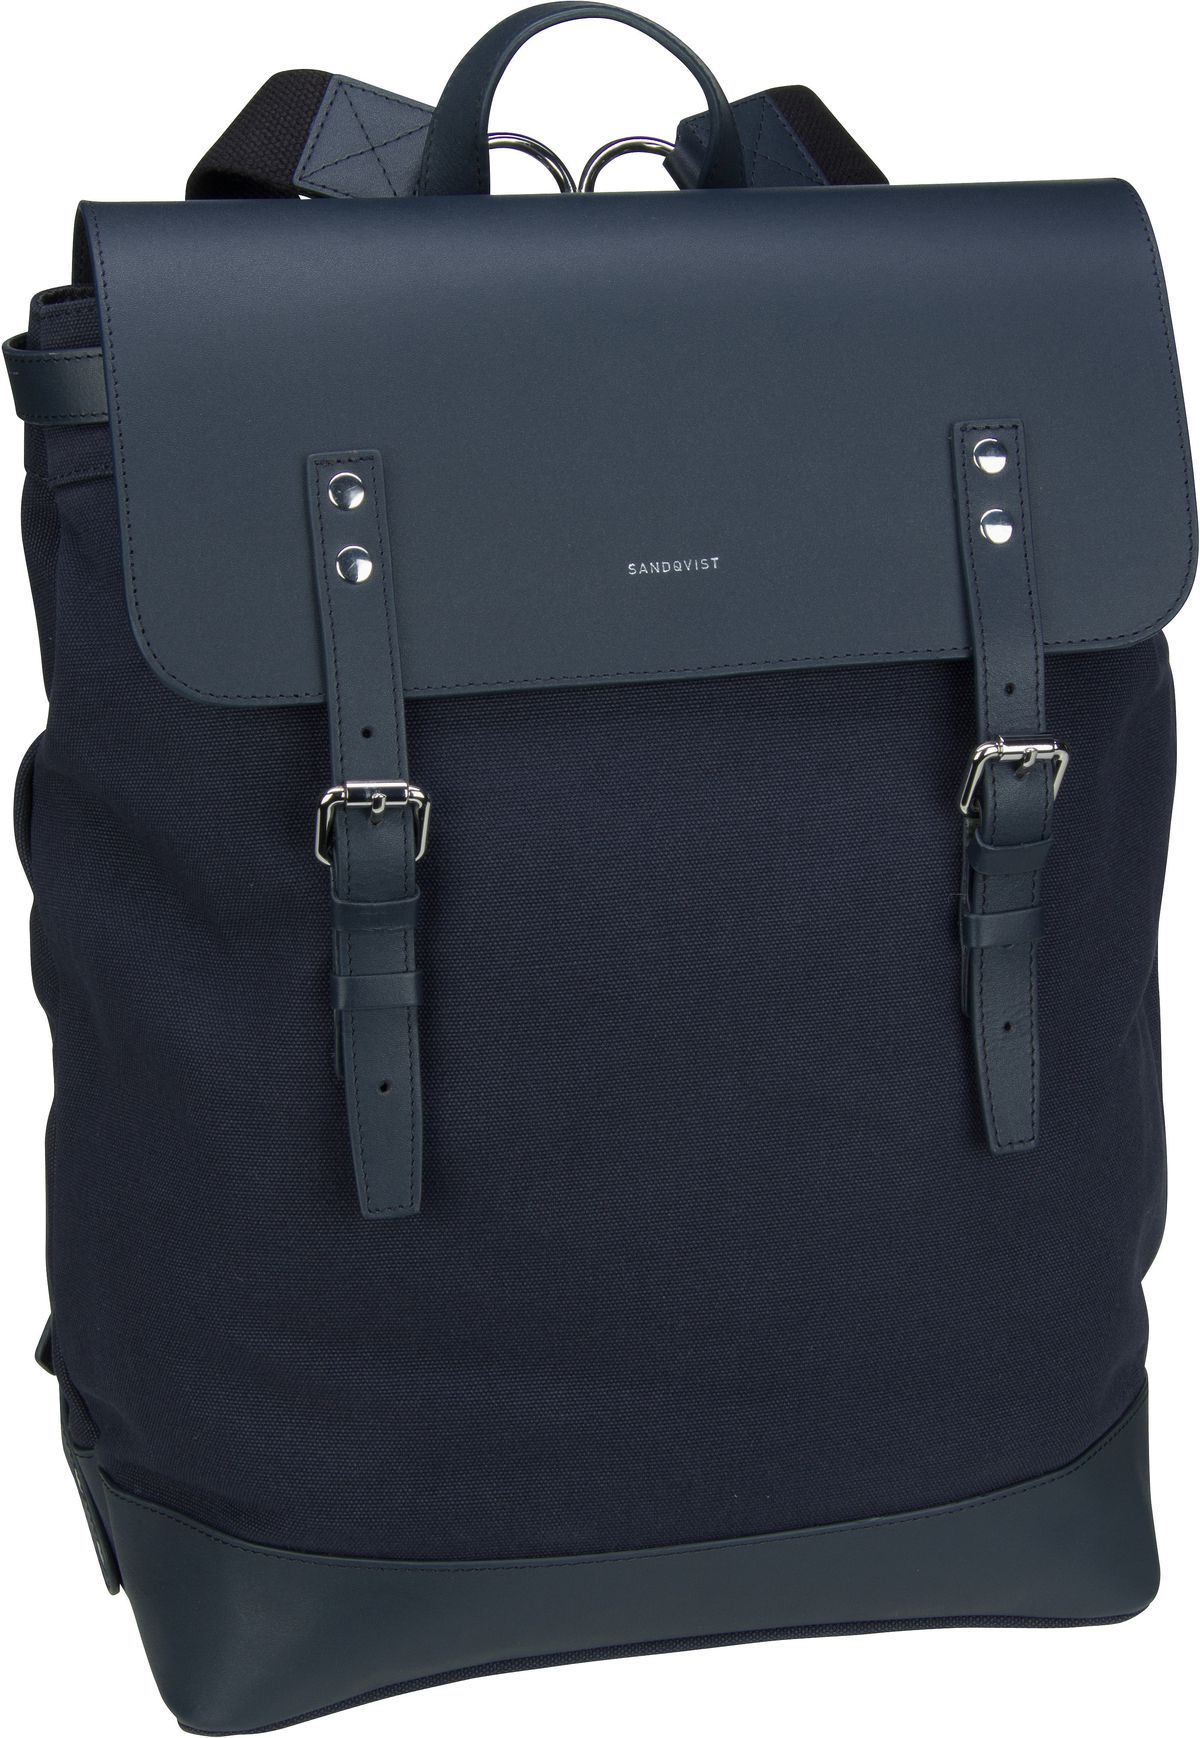 Laptoprucksack Hege Canvas Backpack Navy/Navy Leather (18 Liter)